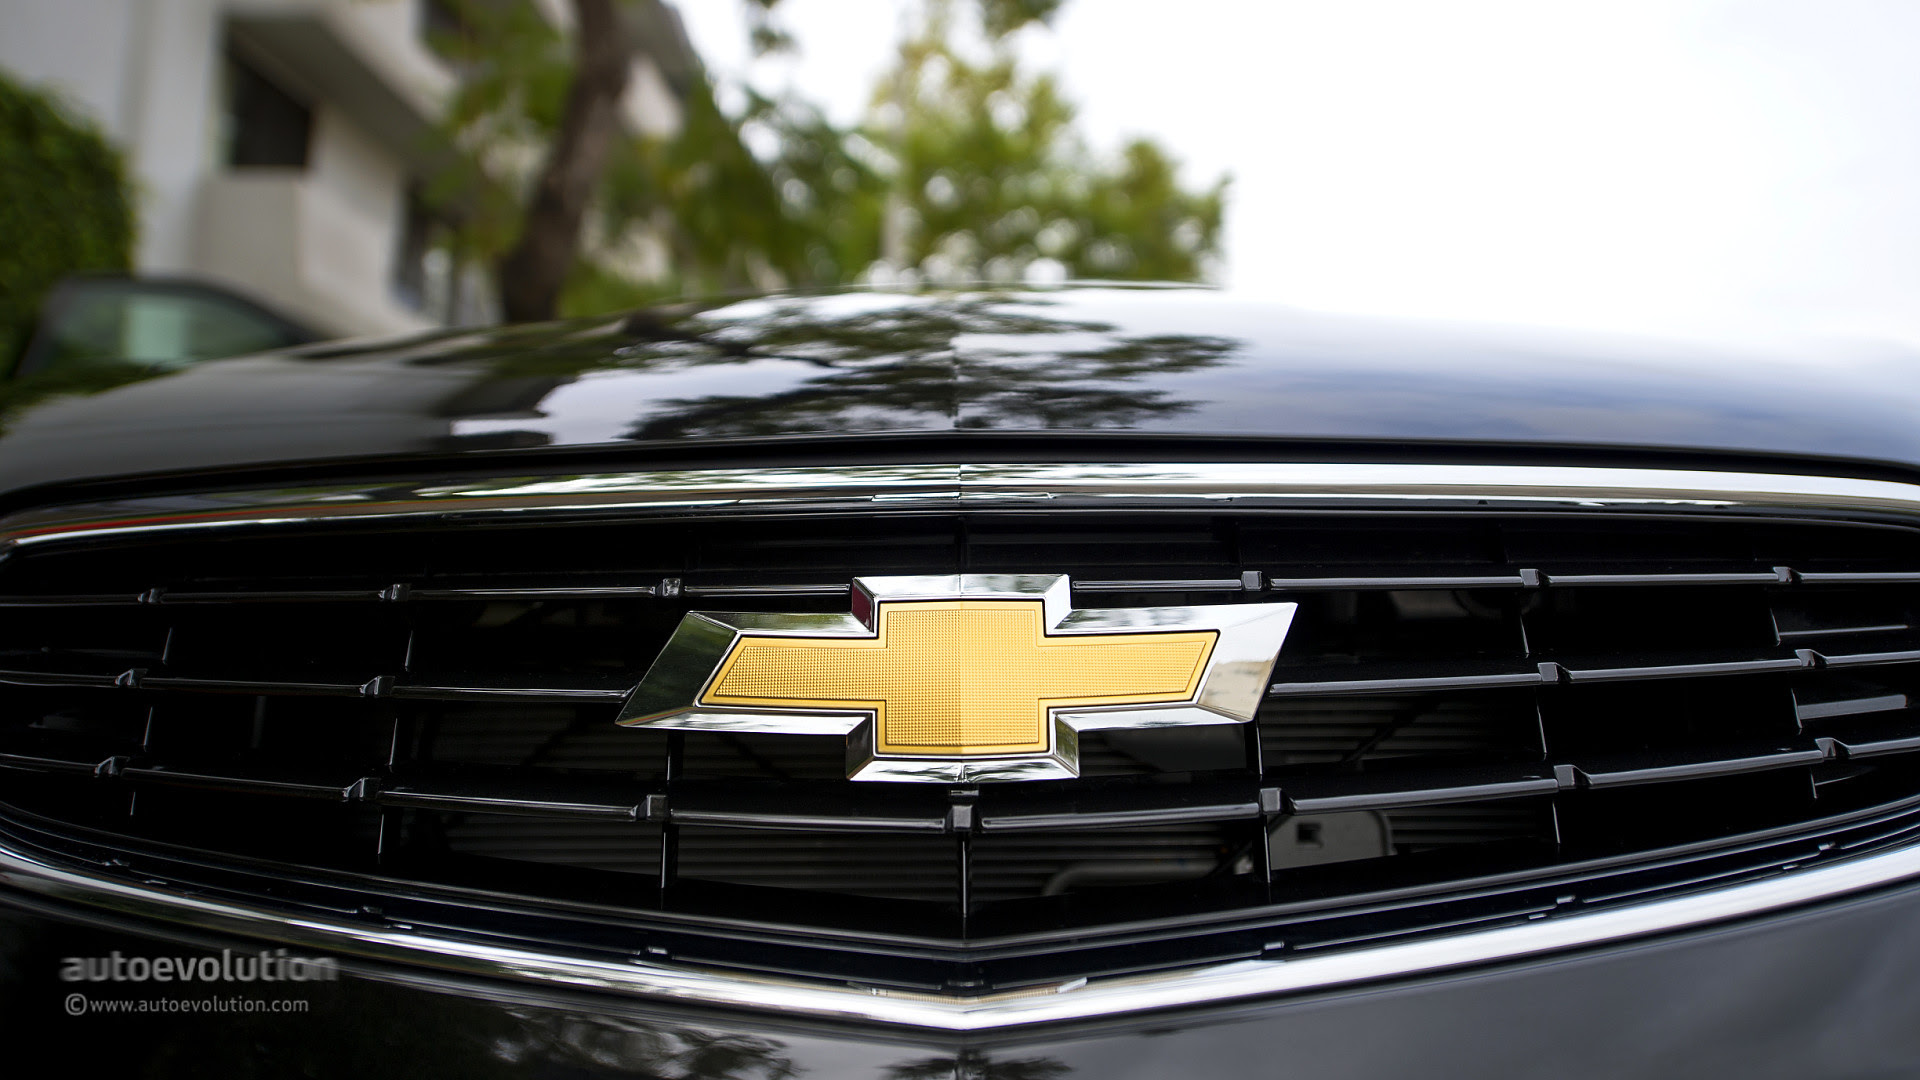 Chevy Bowtie Wallpaper 59  images